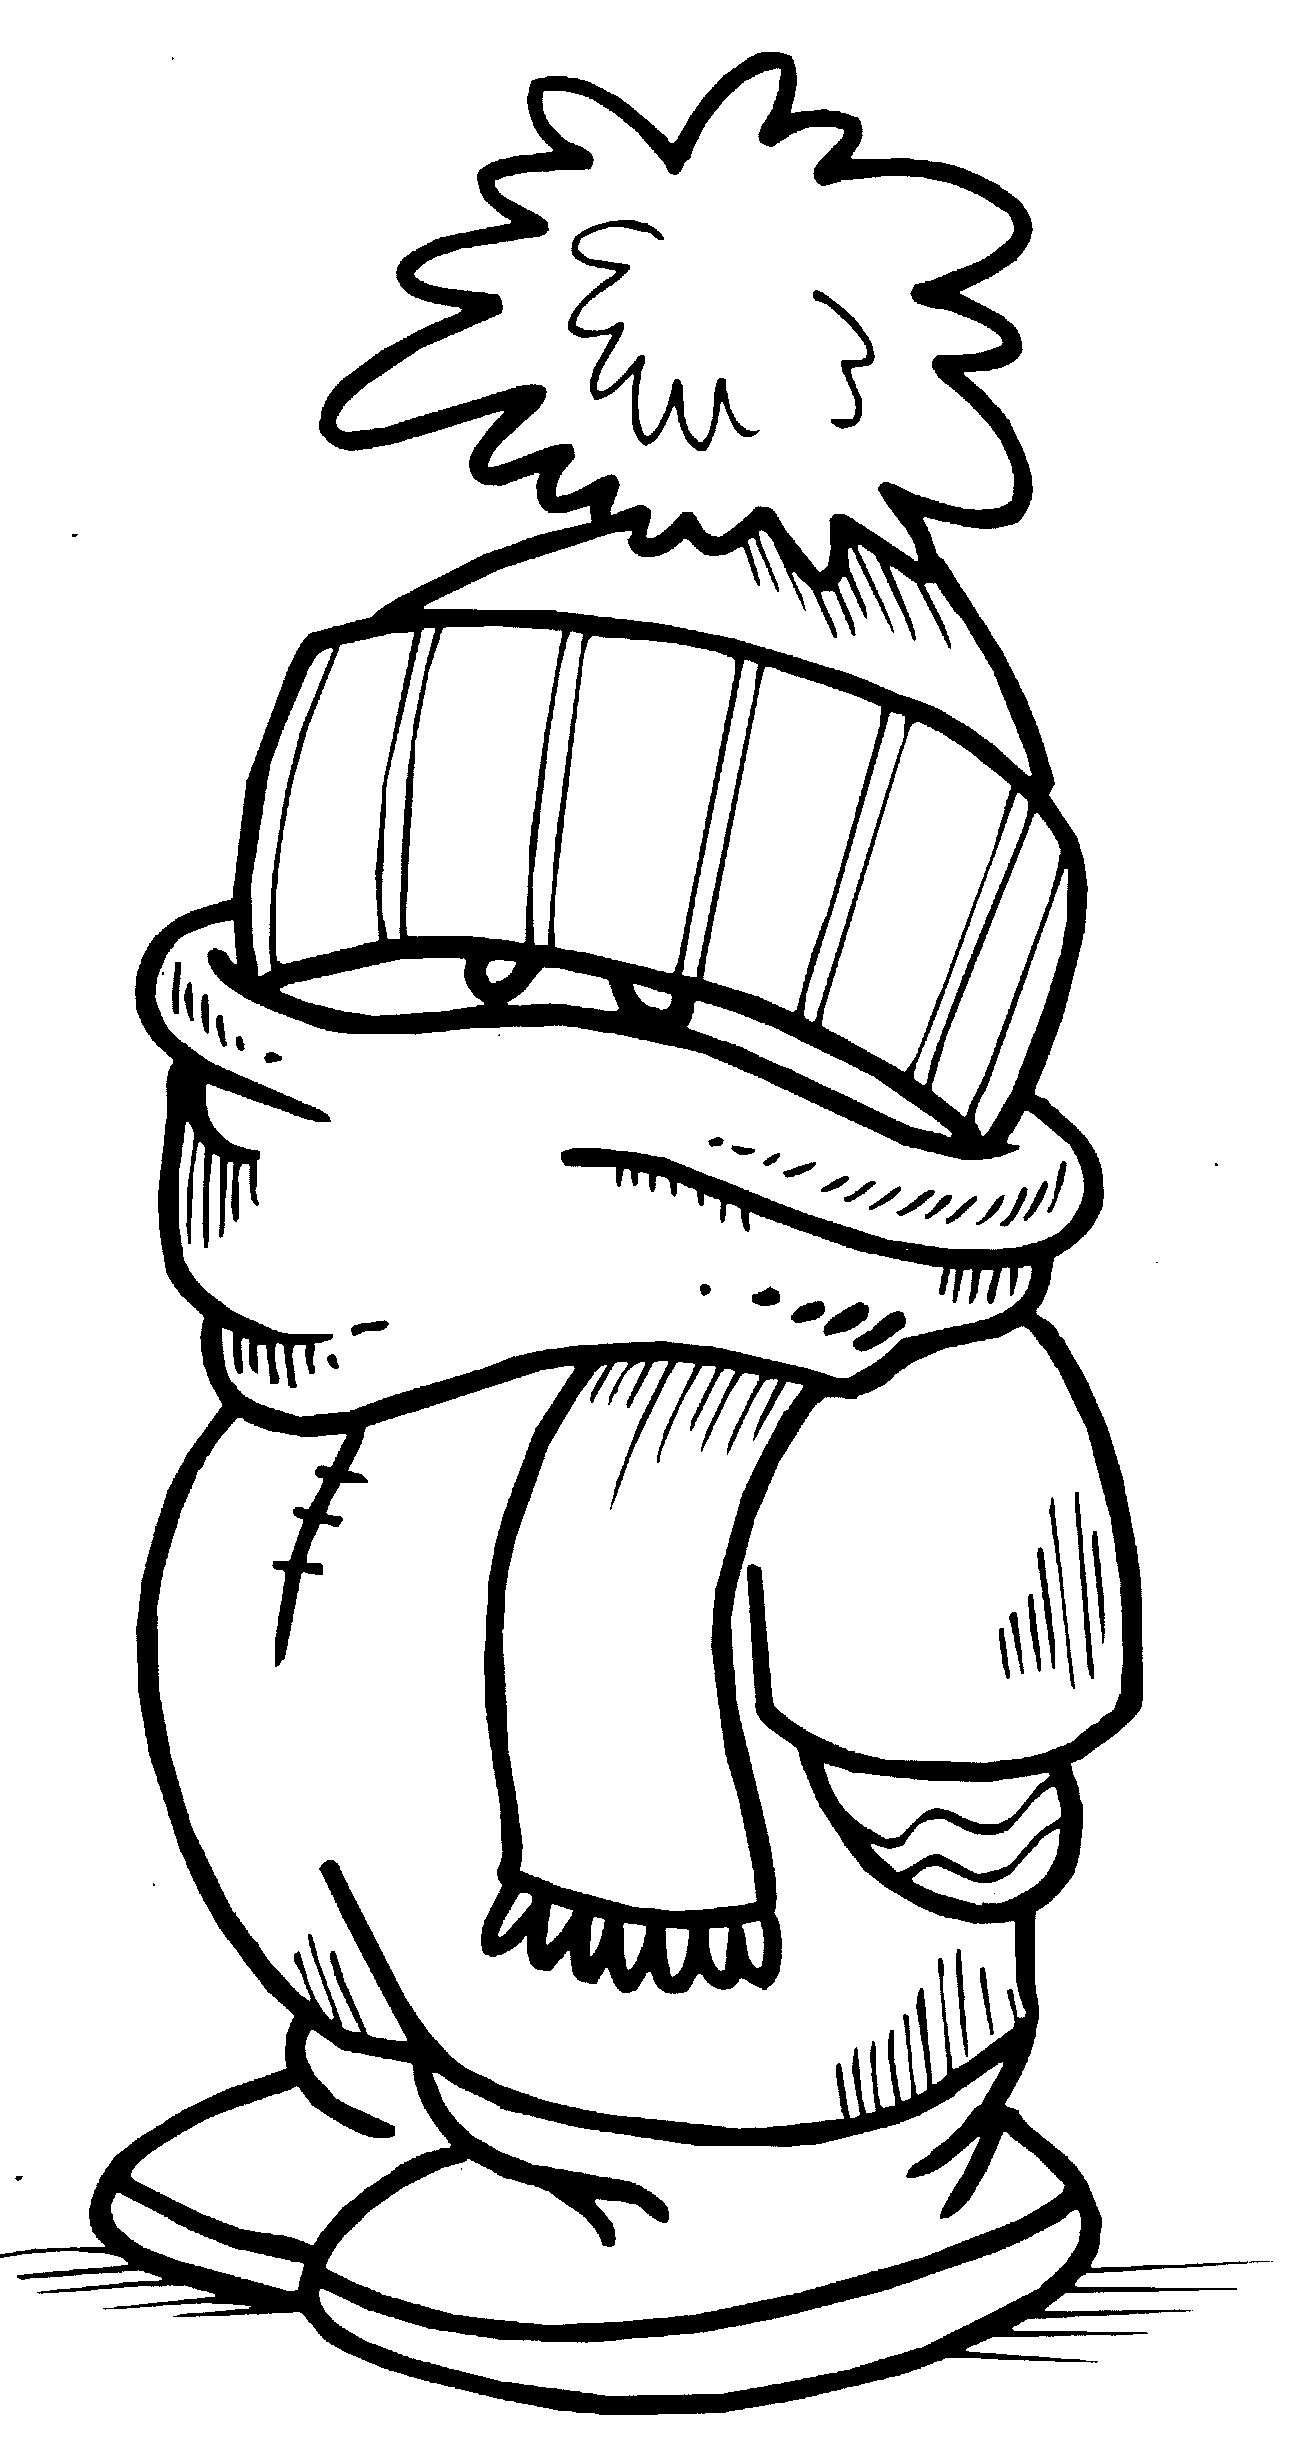 January Coloring Pages | Free download on ClipArtMag